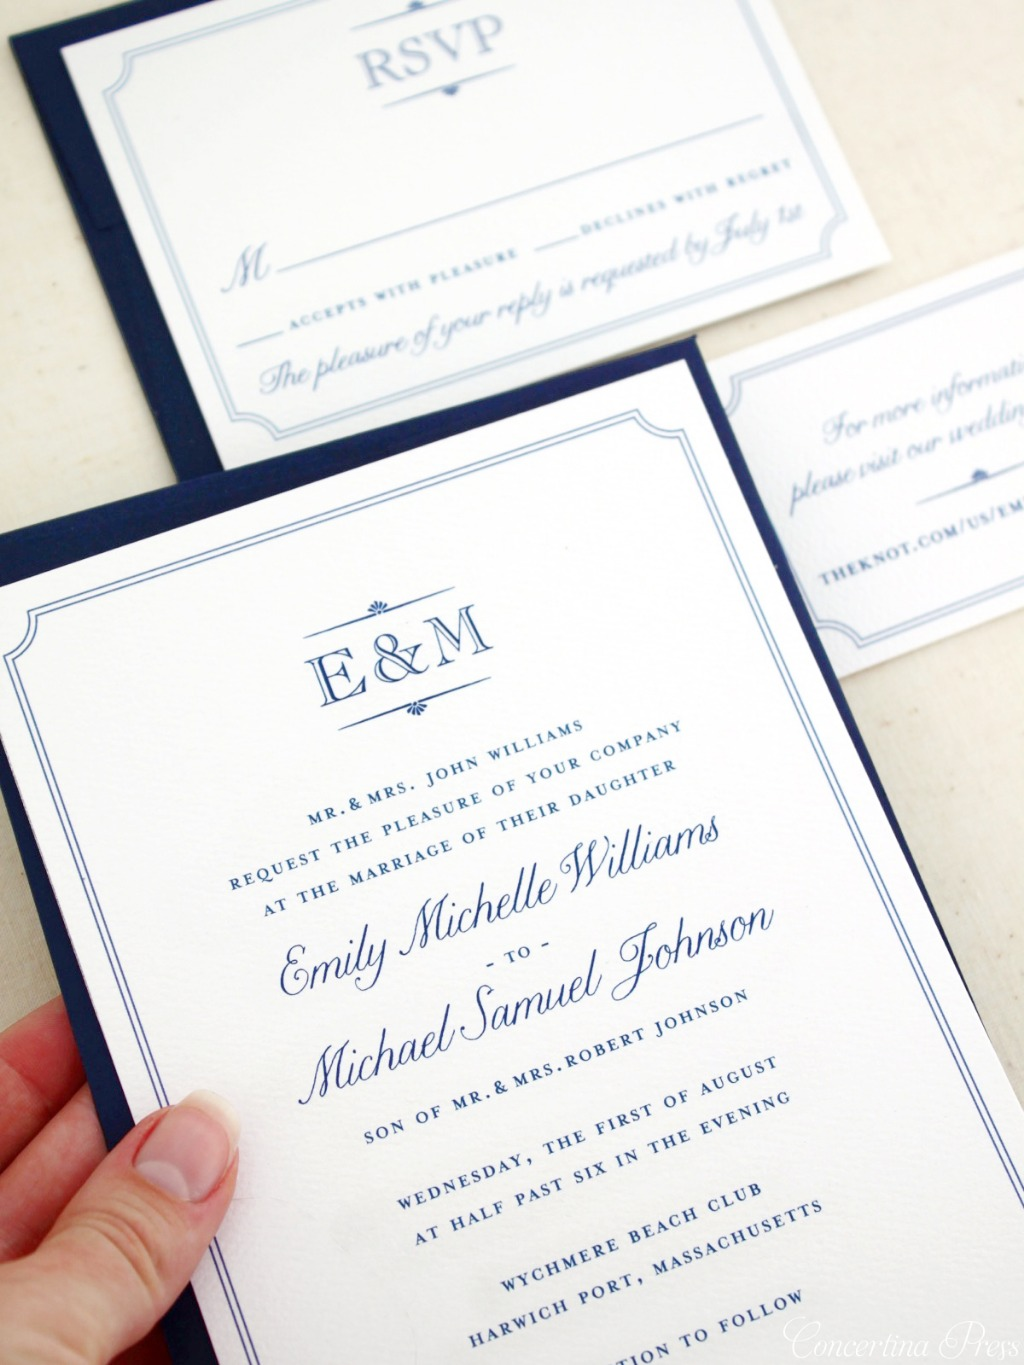 Nothing says classic elegance like a custom monogram! While I designed these elegant monogram invitations, with their delicate, scalloped